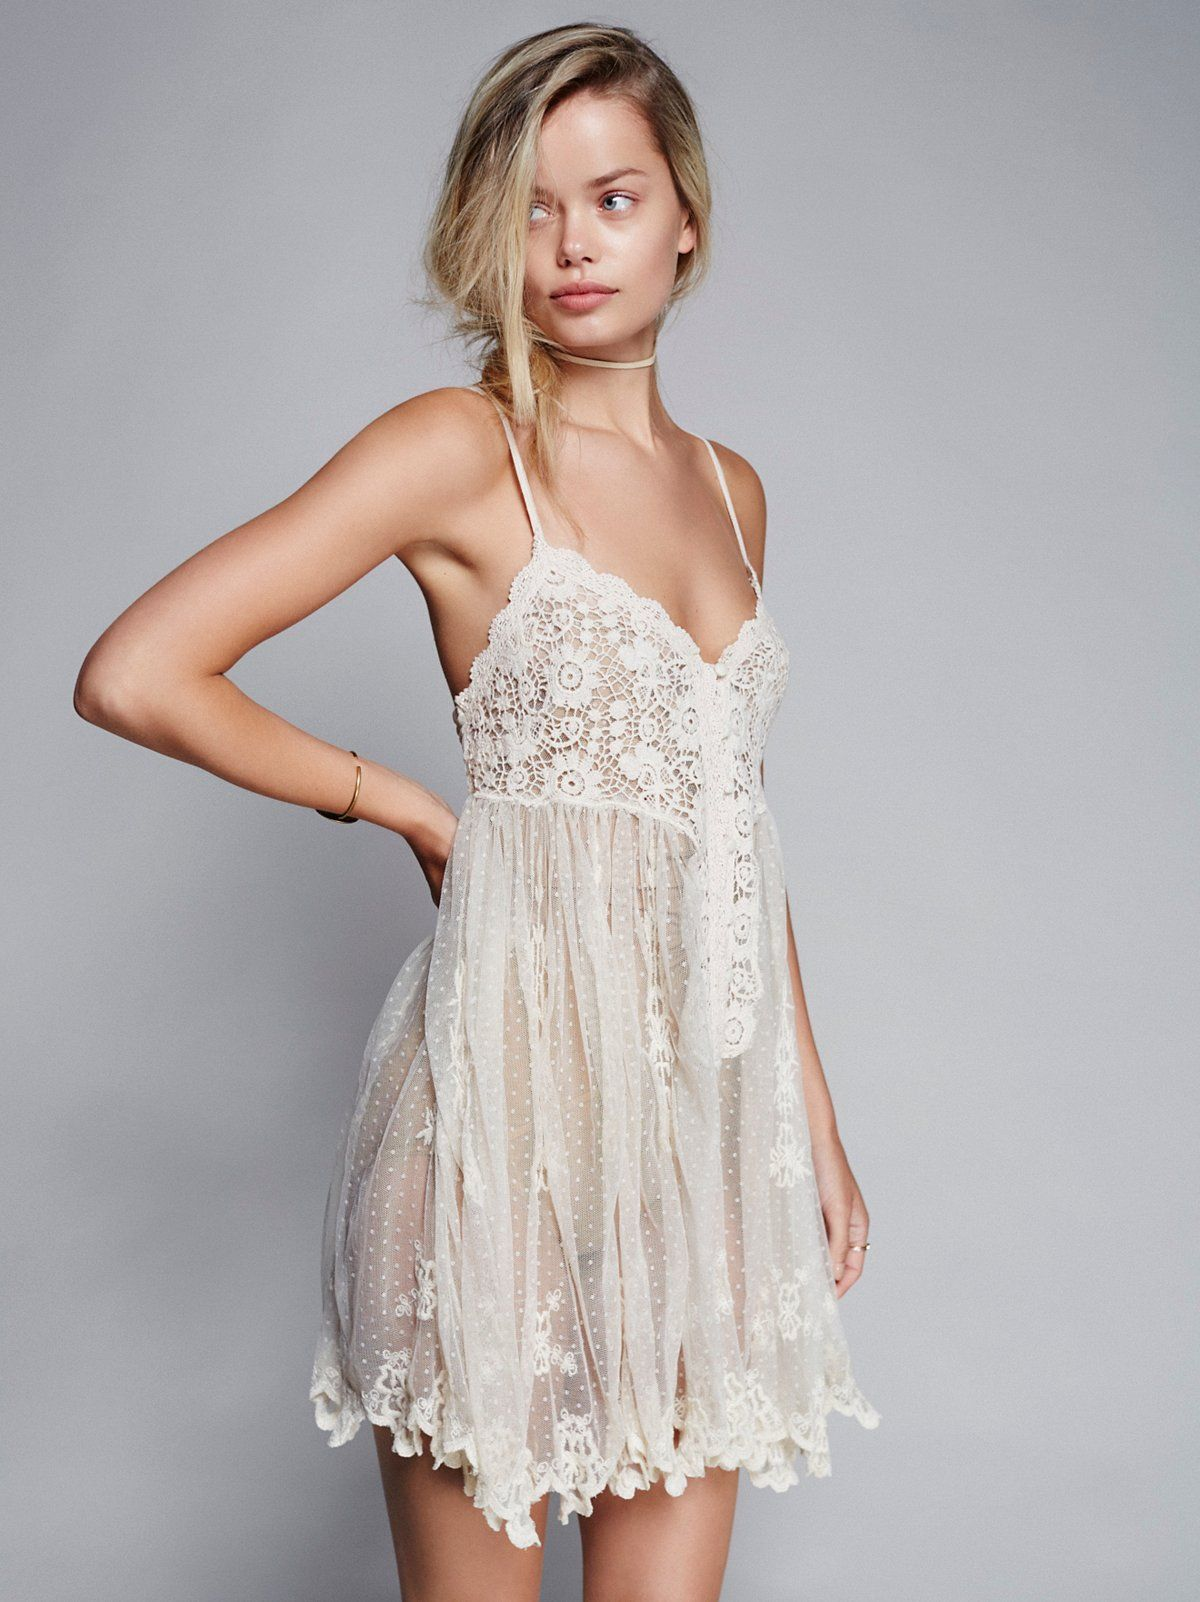 Boho Dresses, Cute & Casual Dresses | Free People | E T H ...